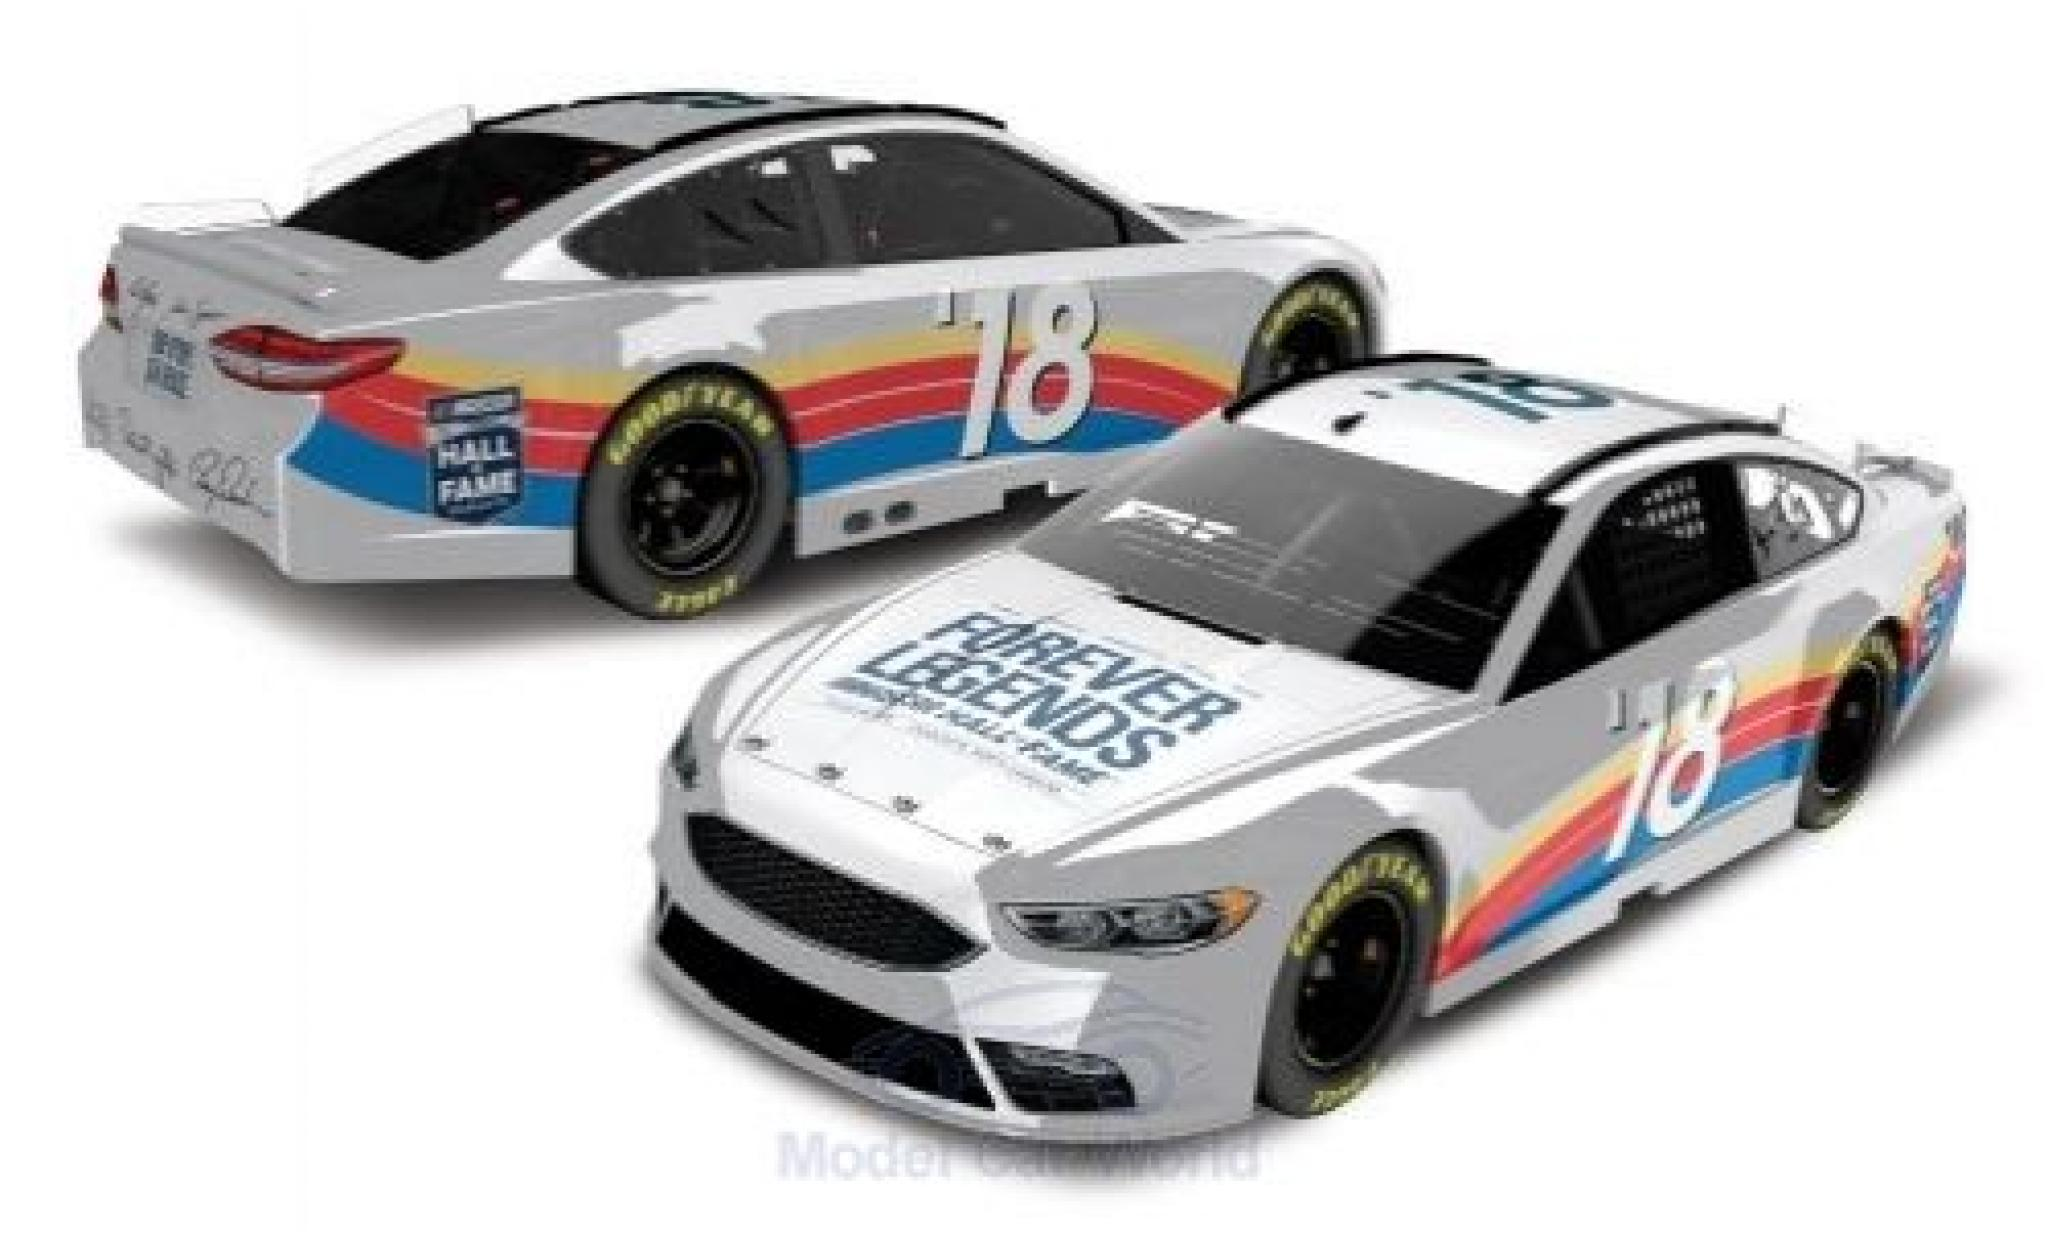 Ford Fusion 1/64 Lionel Racing No.18 Nascar Hall Of Fame Nascar 2018 Class of 2018